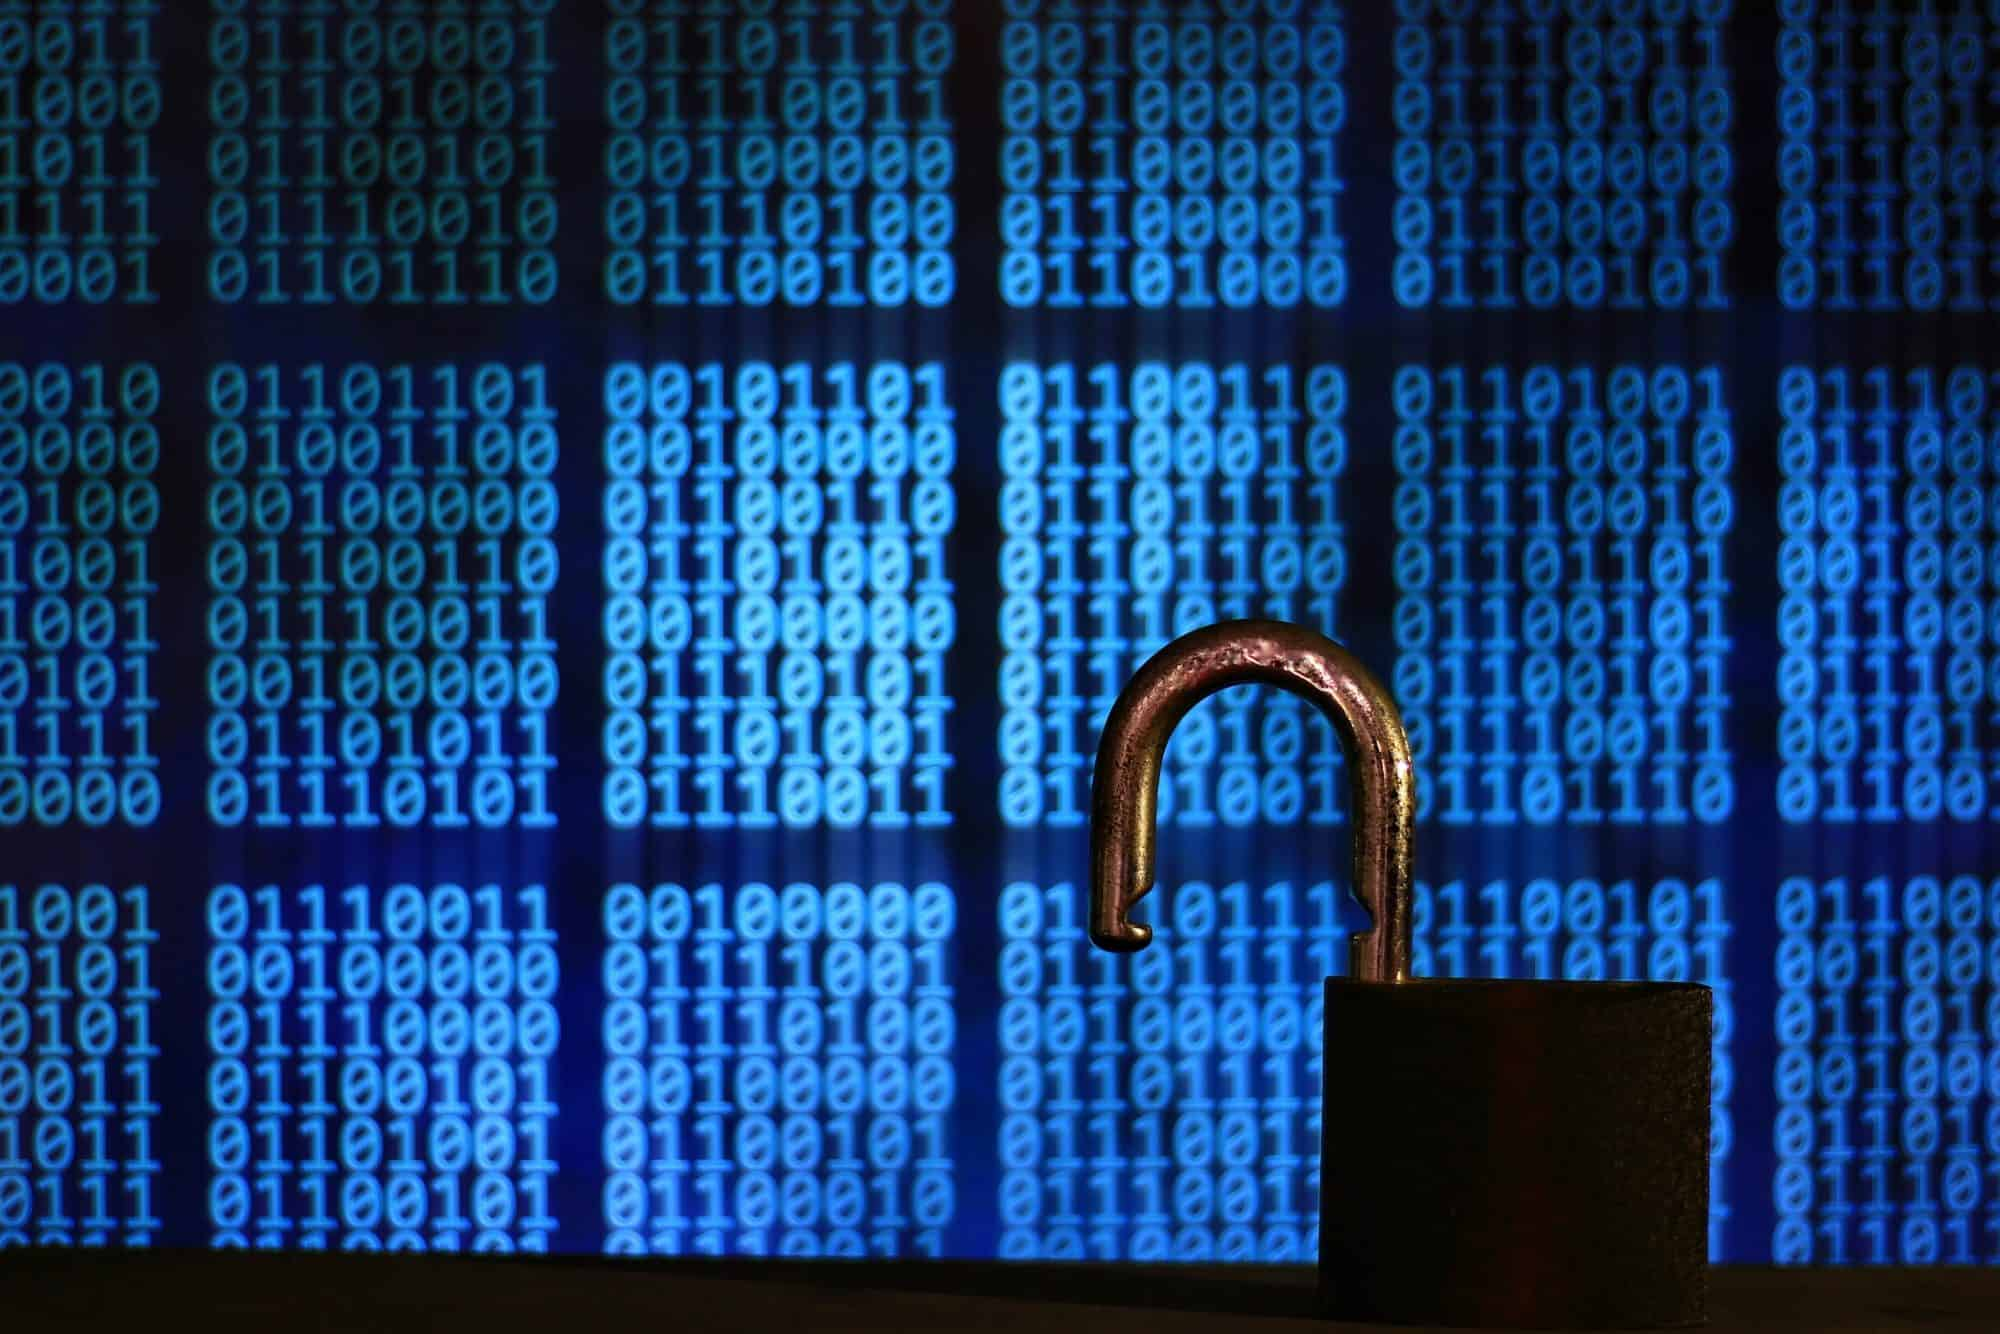 4 Proven Ways to Protect Login Credentials to Greatly Improve Your Data Security